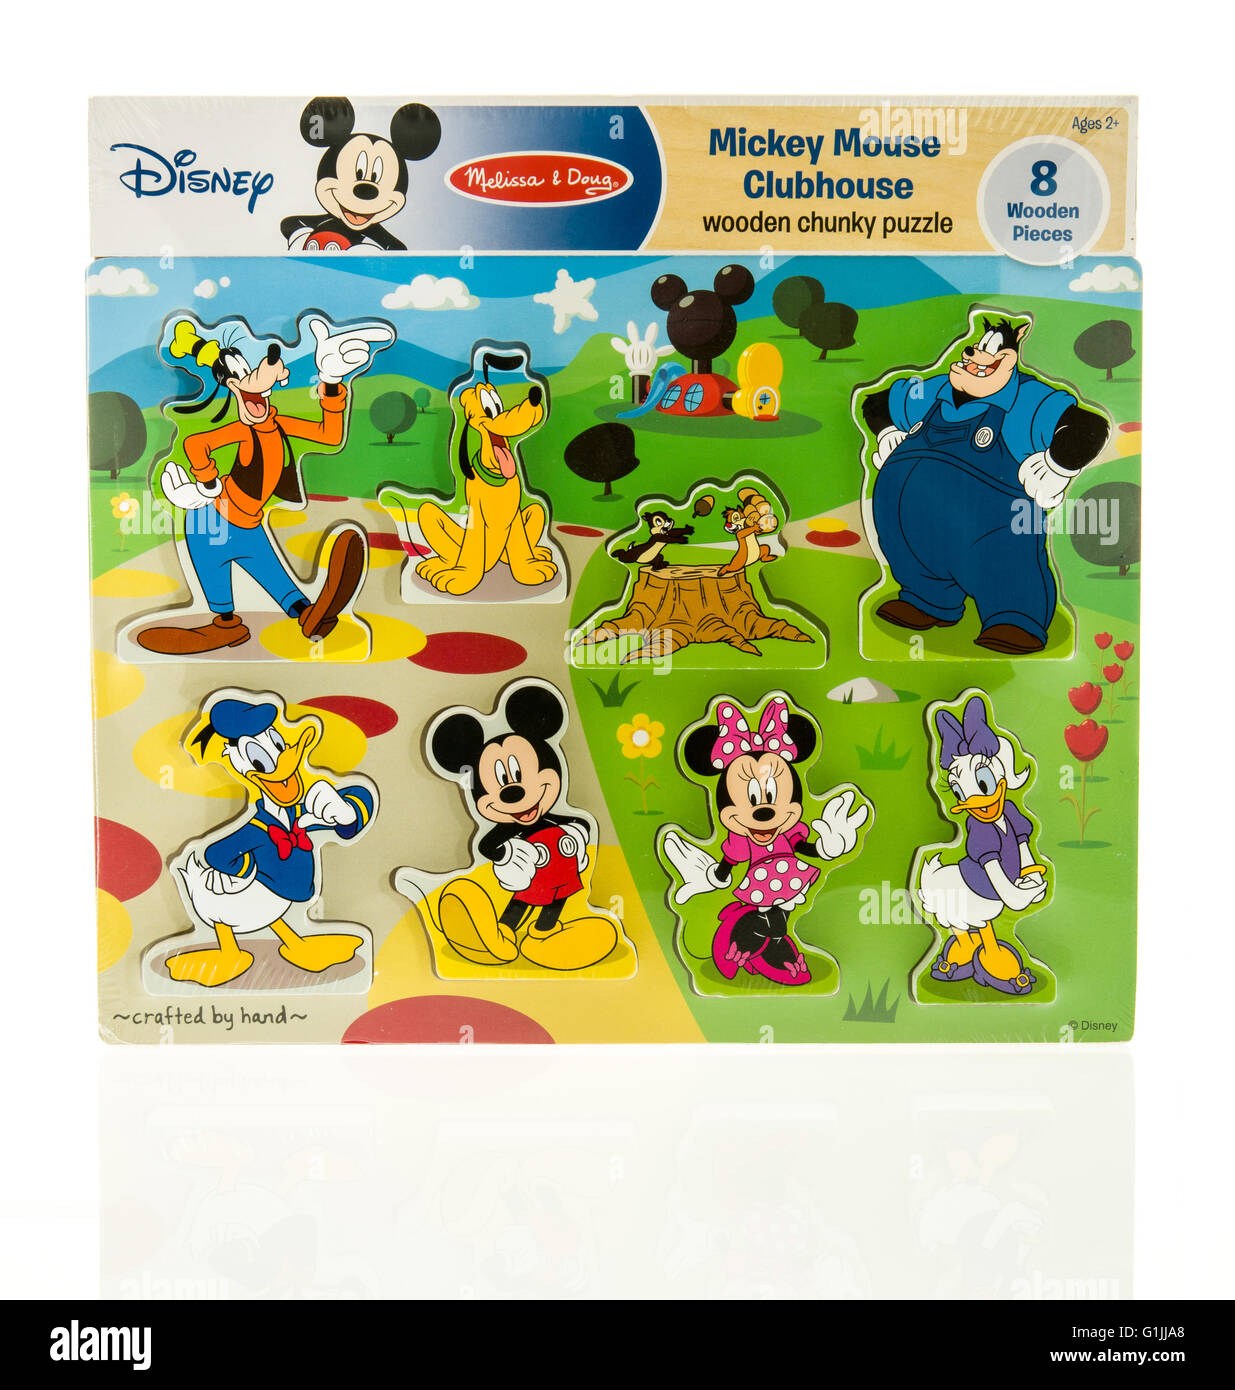 Winneconne, WI - 15 May 2016: Package of a Disney Mickey Mouse clubhouse puzzle on an isolated background - Stock Image